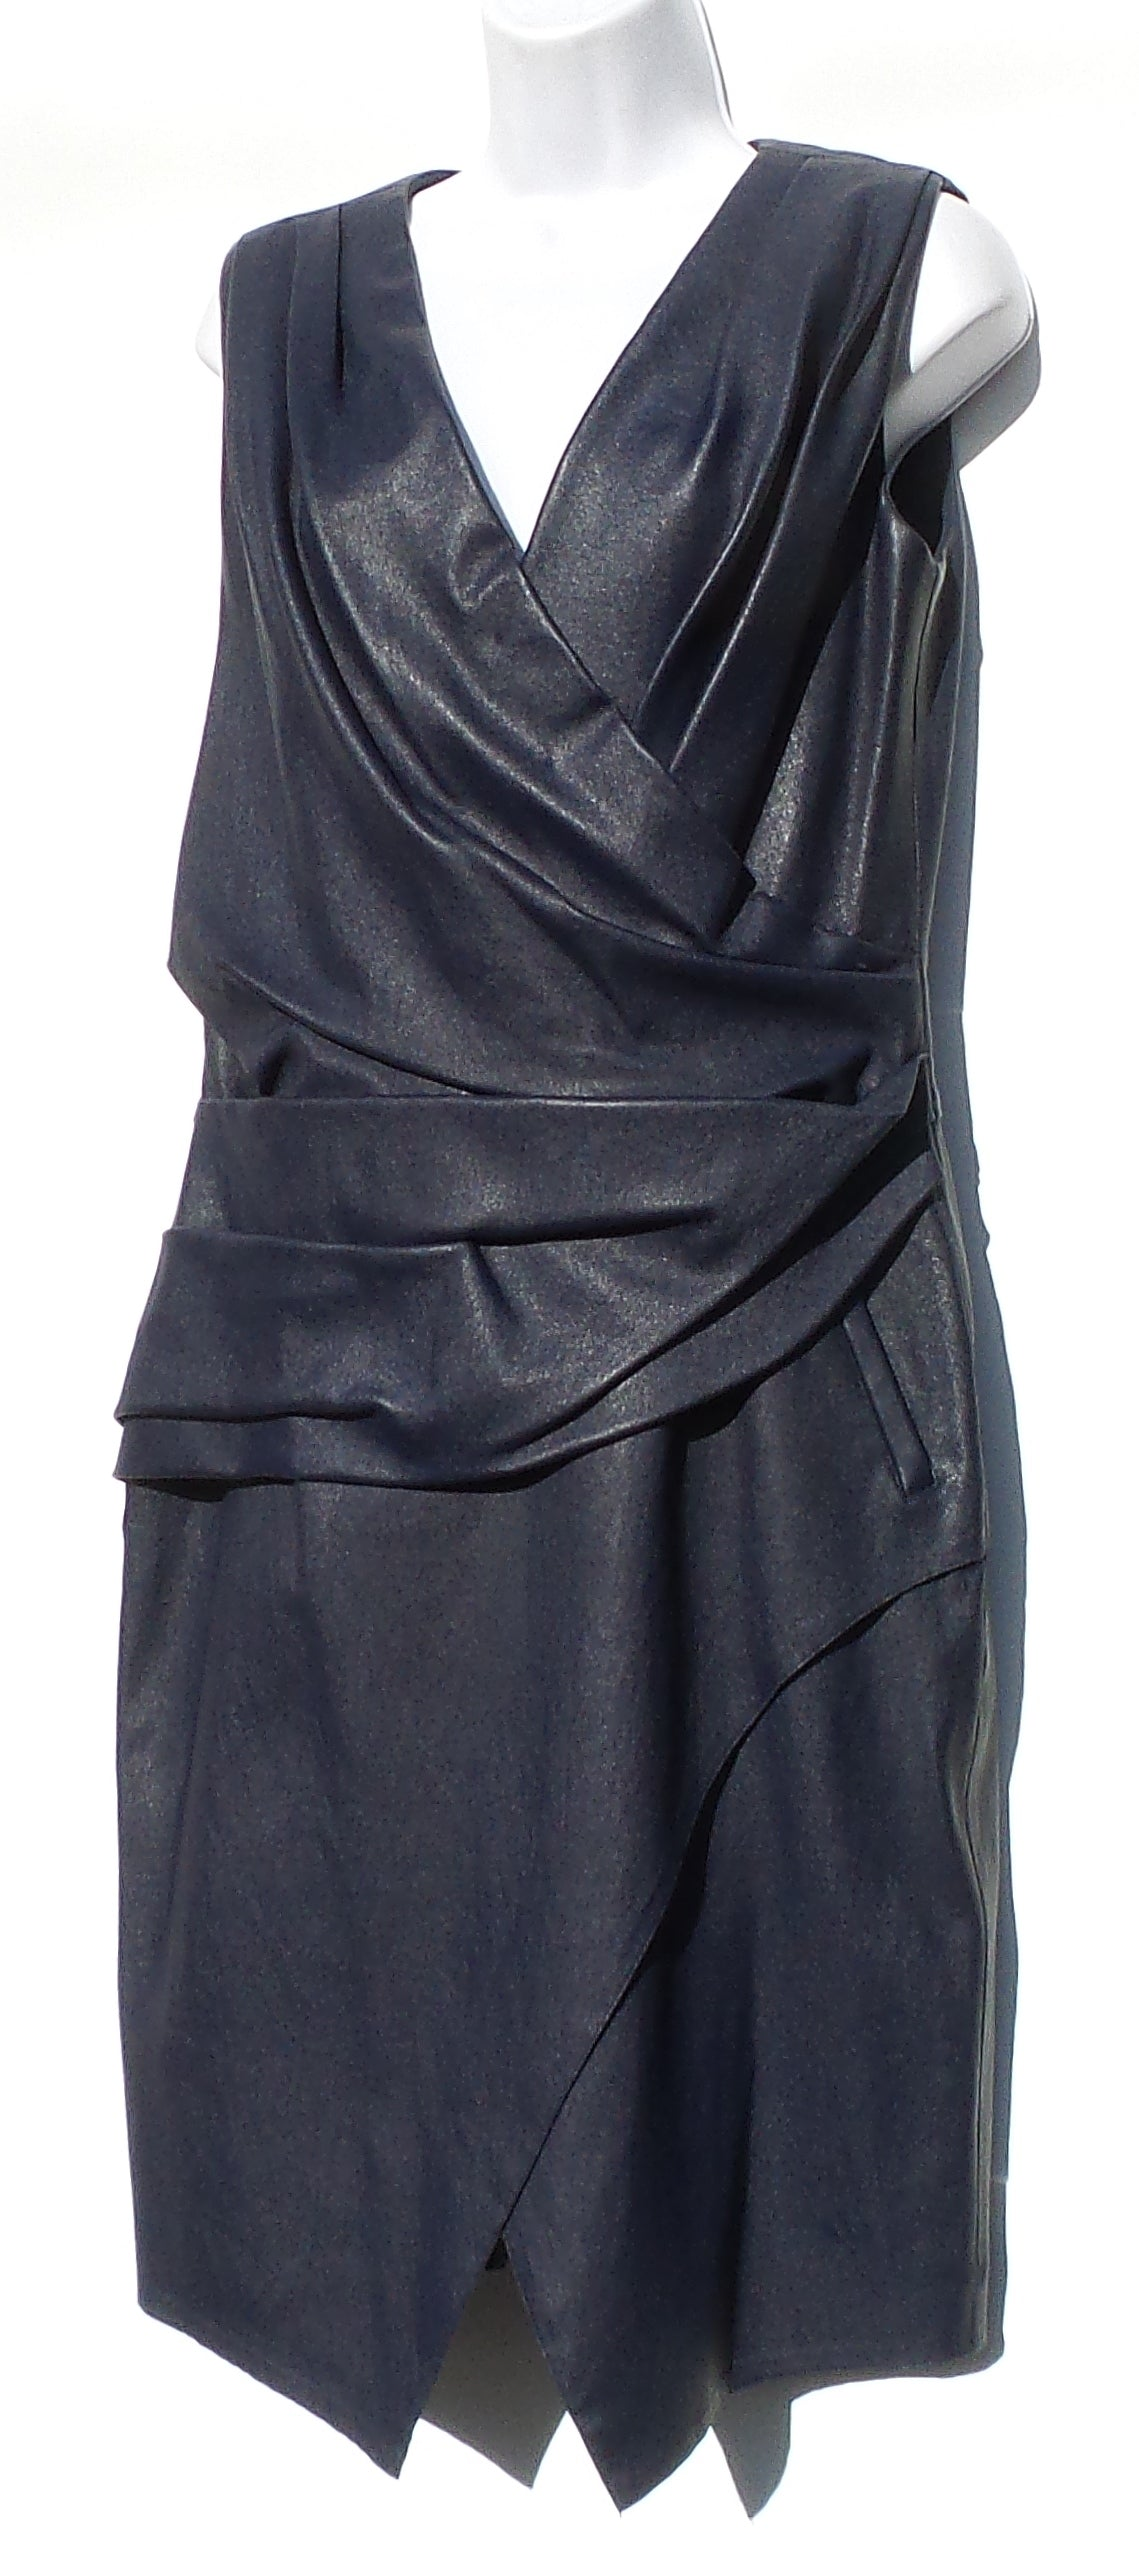 J. MENDEL Navy Blue Faux-Wrap Lamb Leather Sheath Dress 12 $3800 NWT